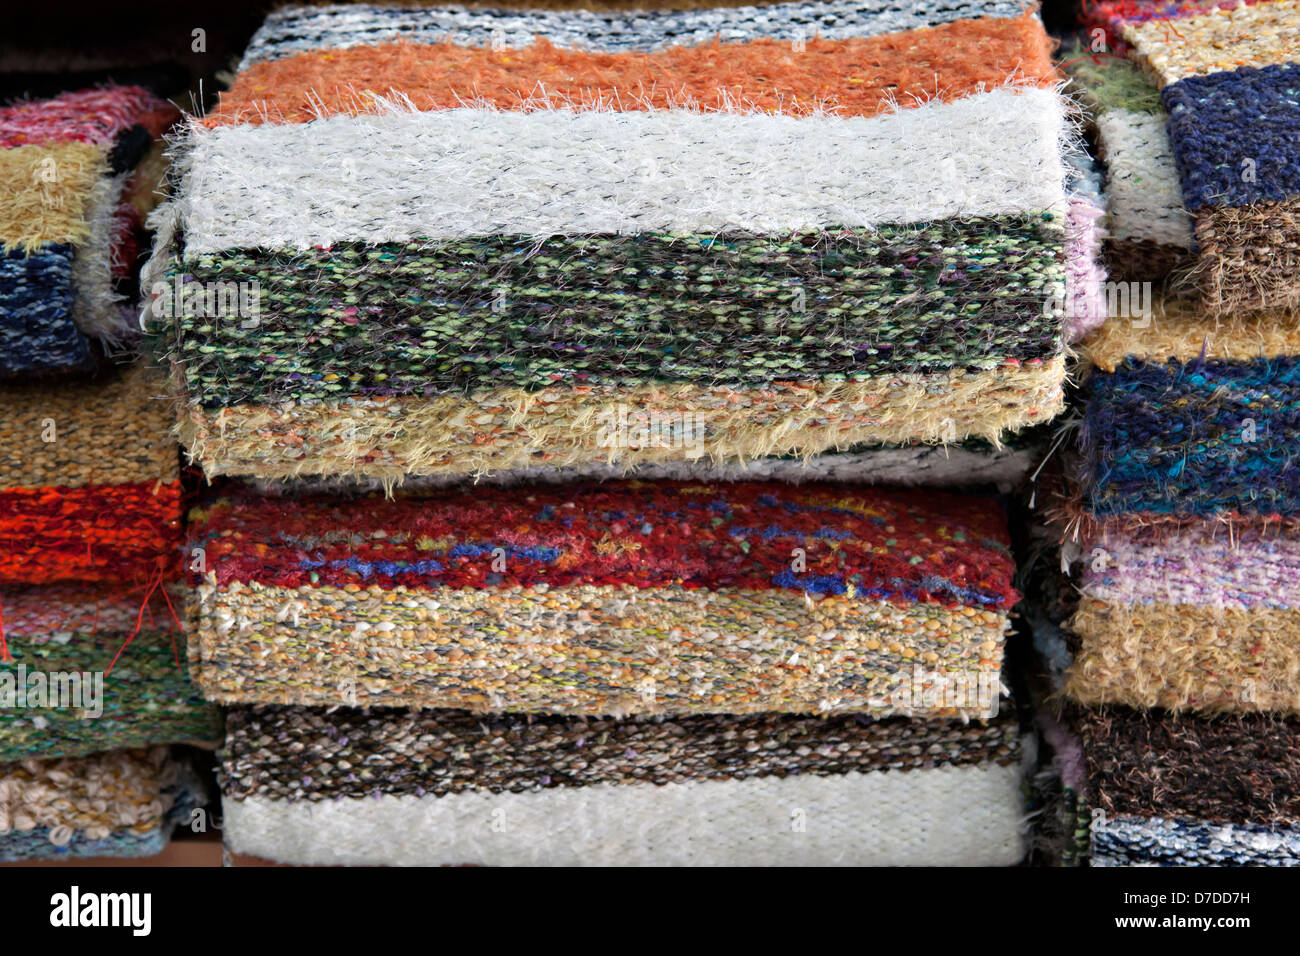 Large group of rugs on shelves - Stock Image